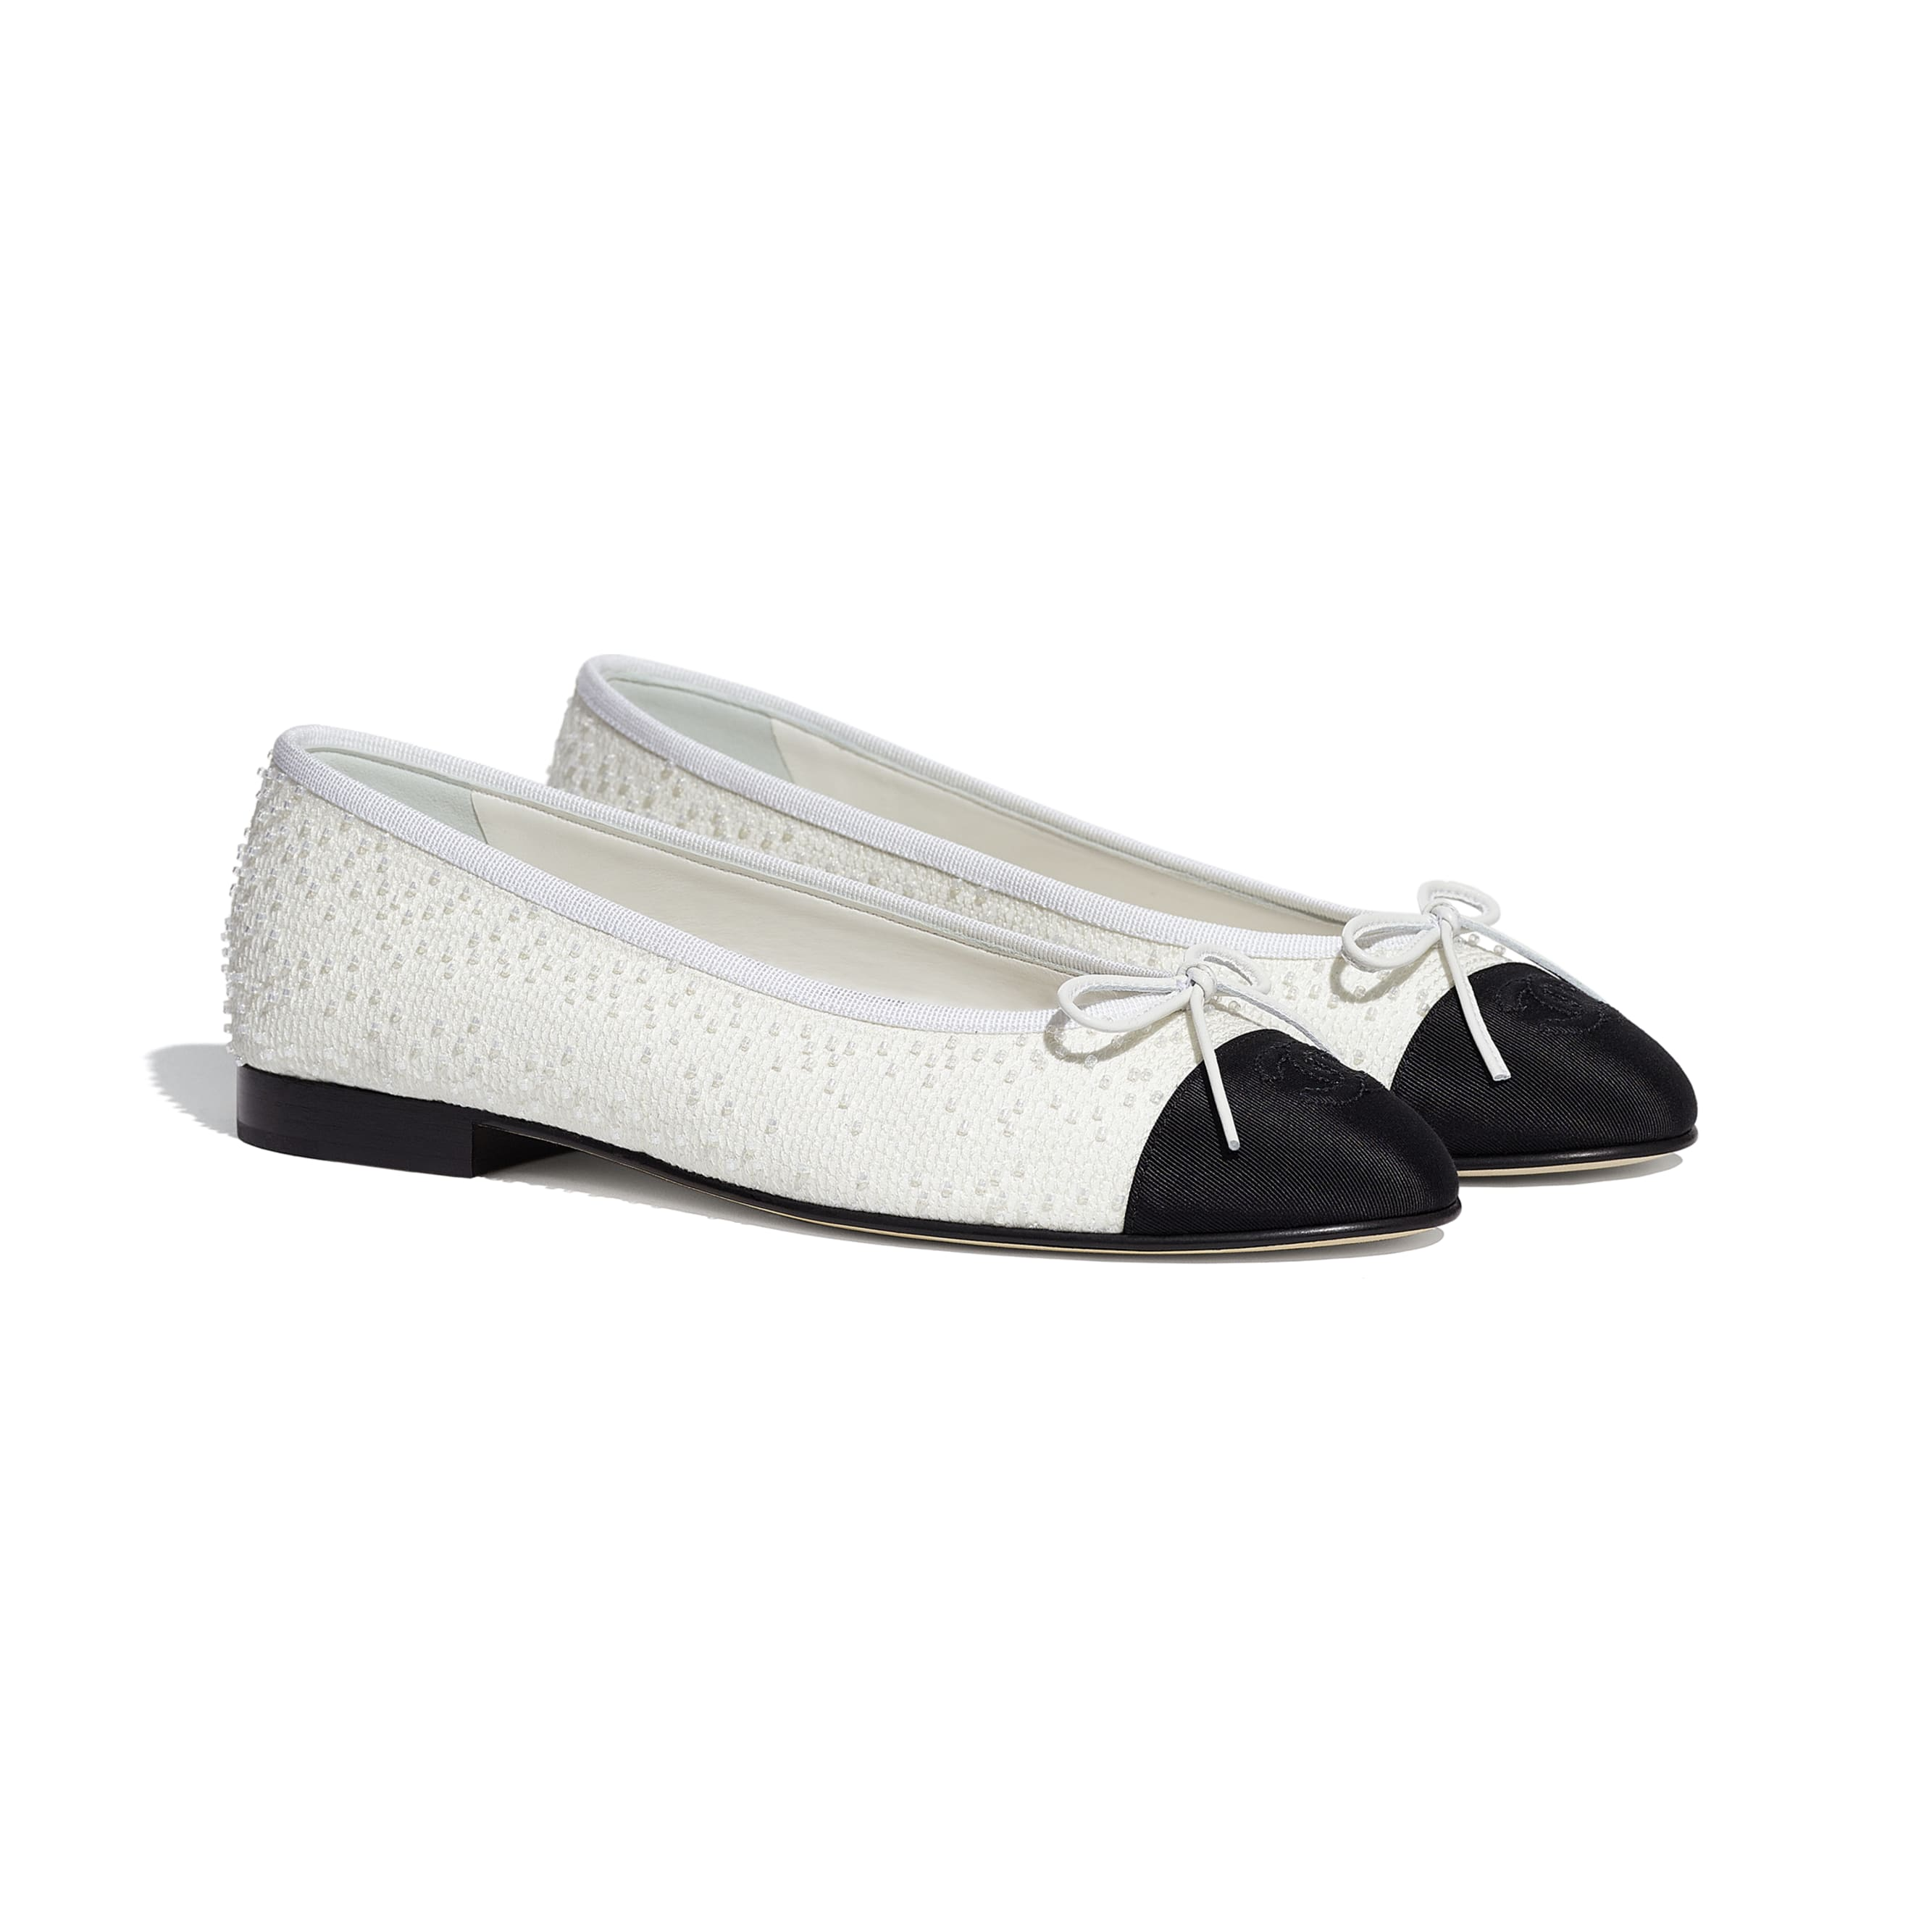 Flats - White & Black - Embroidered Fabric & Grosgrain - CHANEL - Alternative view - see standard sized version